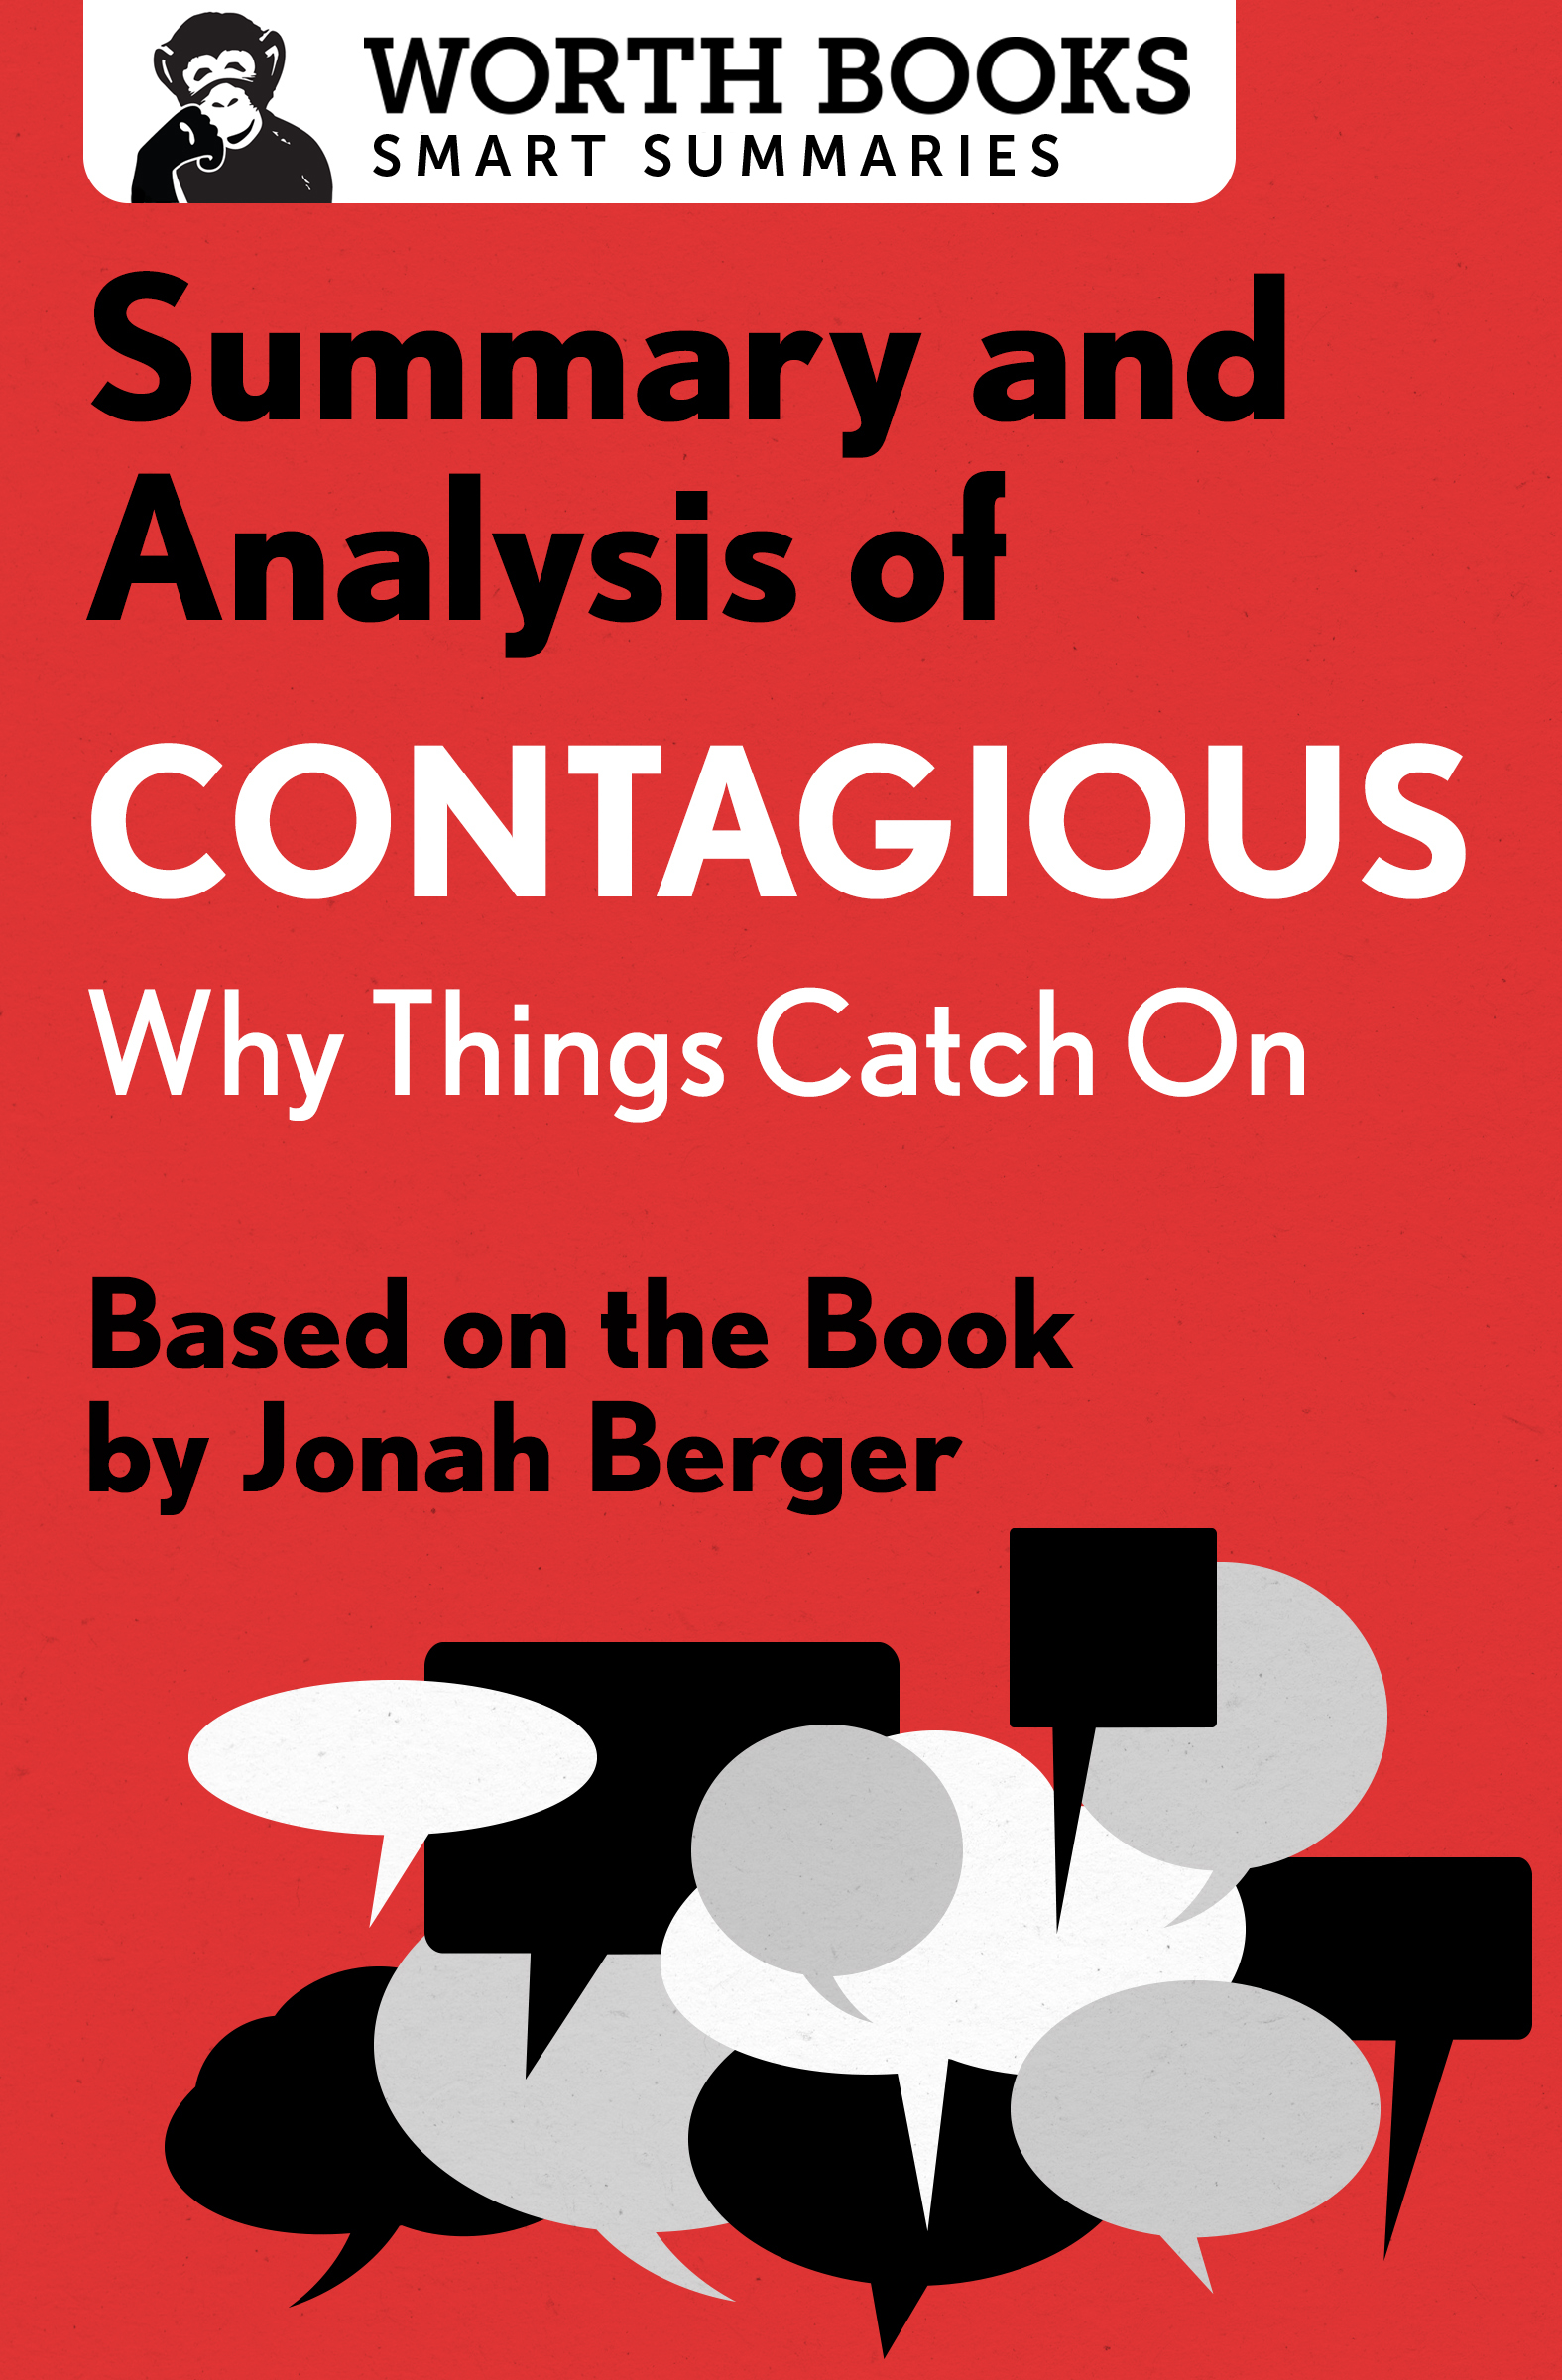 Summary and Analysis of Contagious: Why Things Catch On: Based on the Book by Jonah Berger